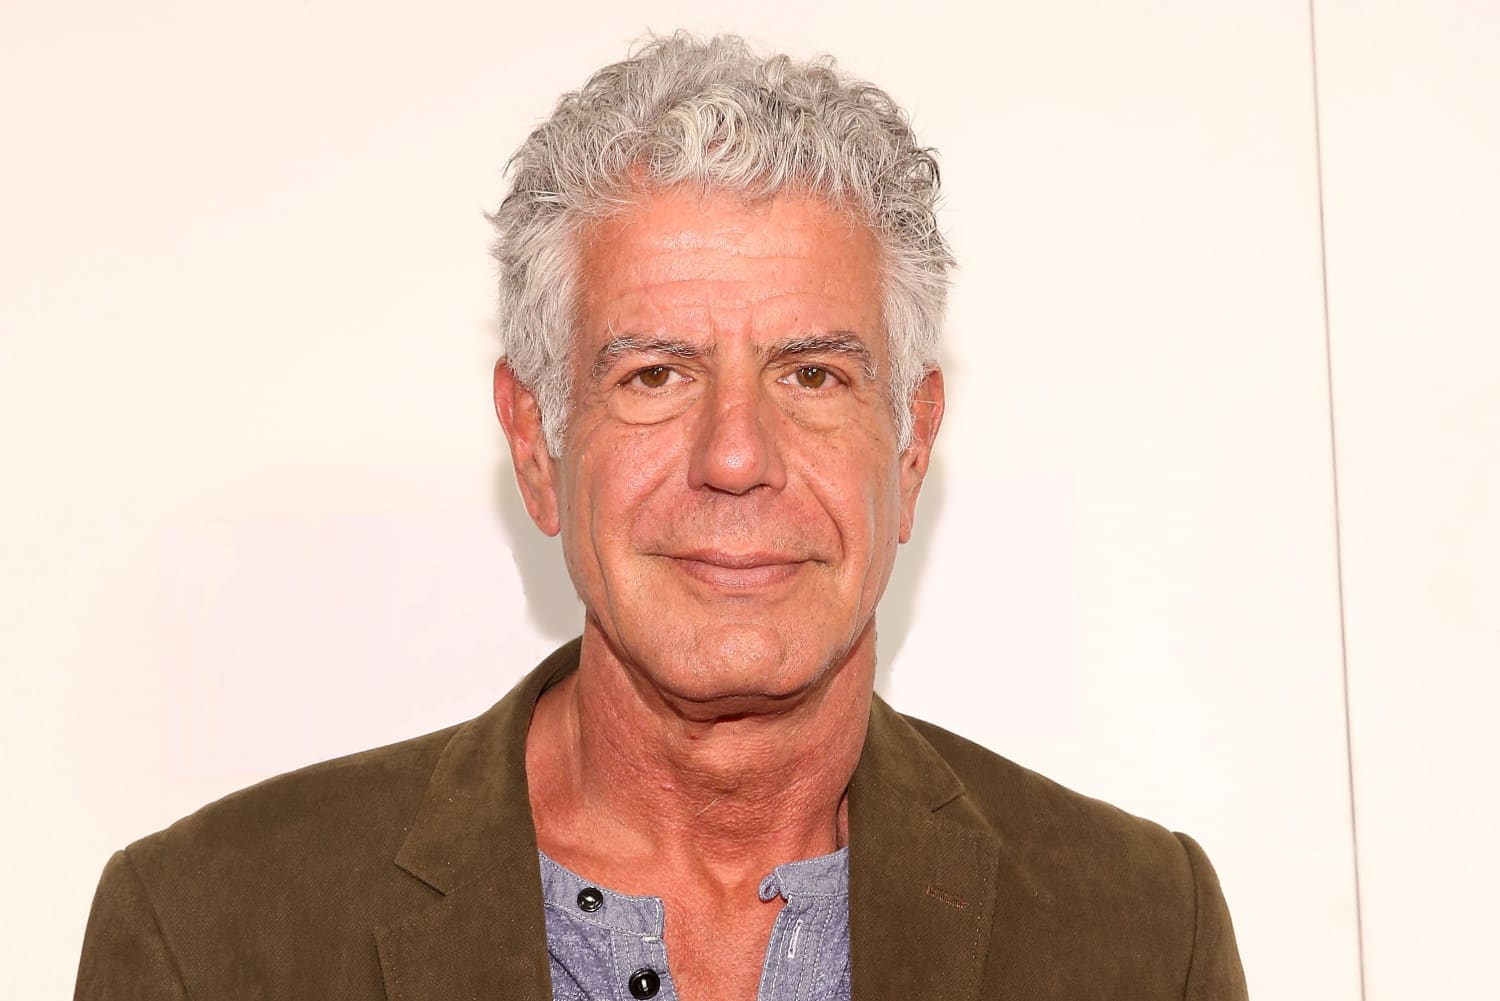 The Auction for Anthony Bourdain's Personal Belongings Brings in $1.8 Million